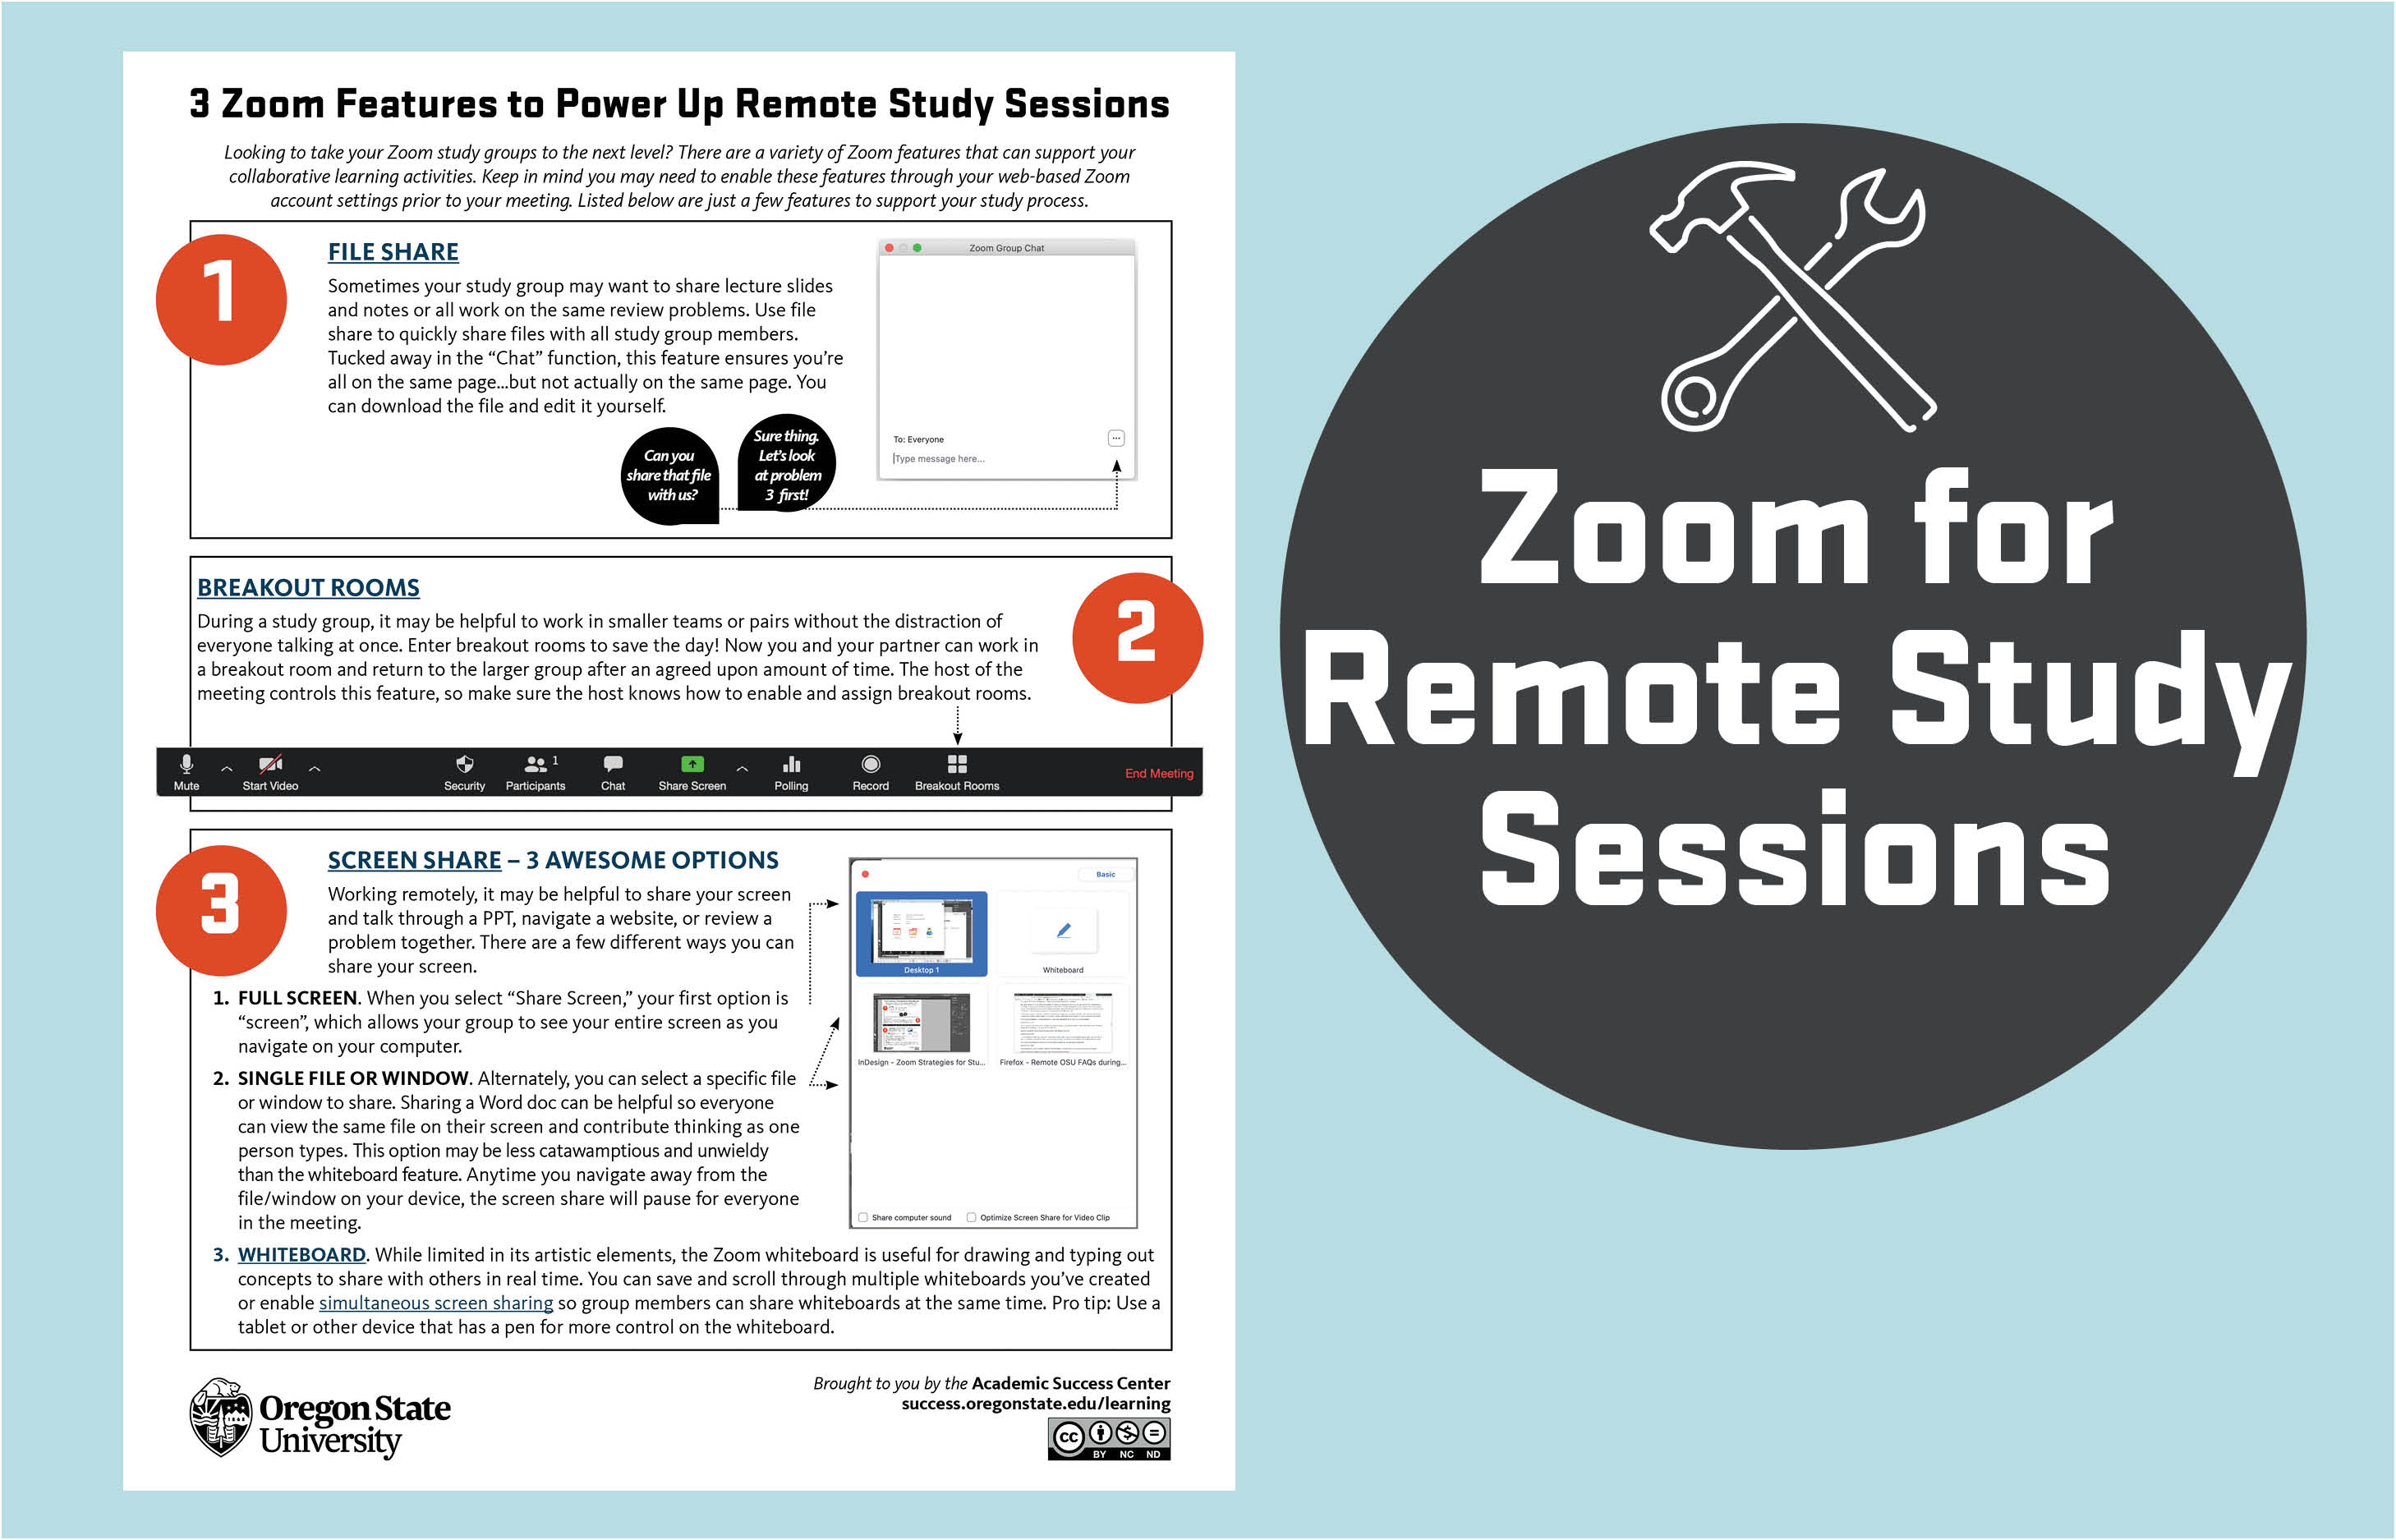 Zoom for Remote Study Sessions